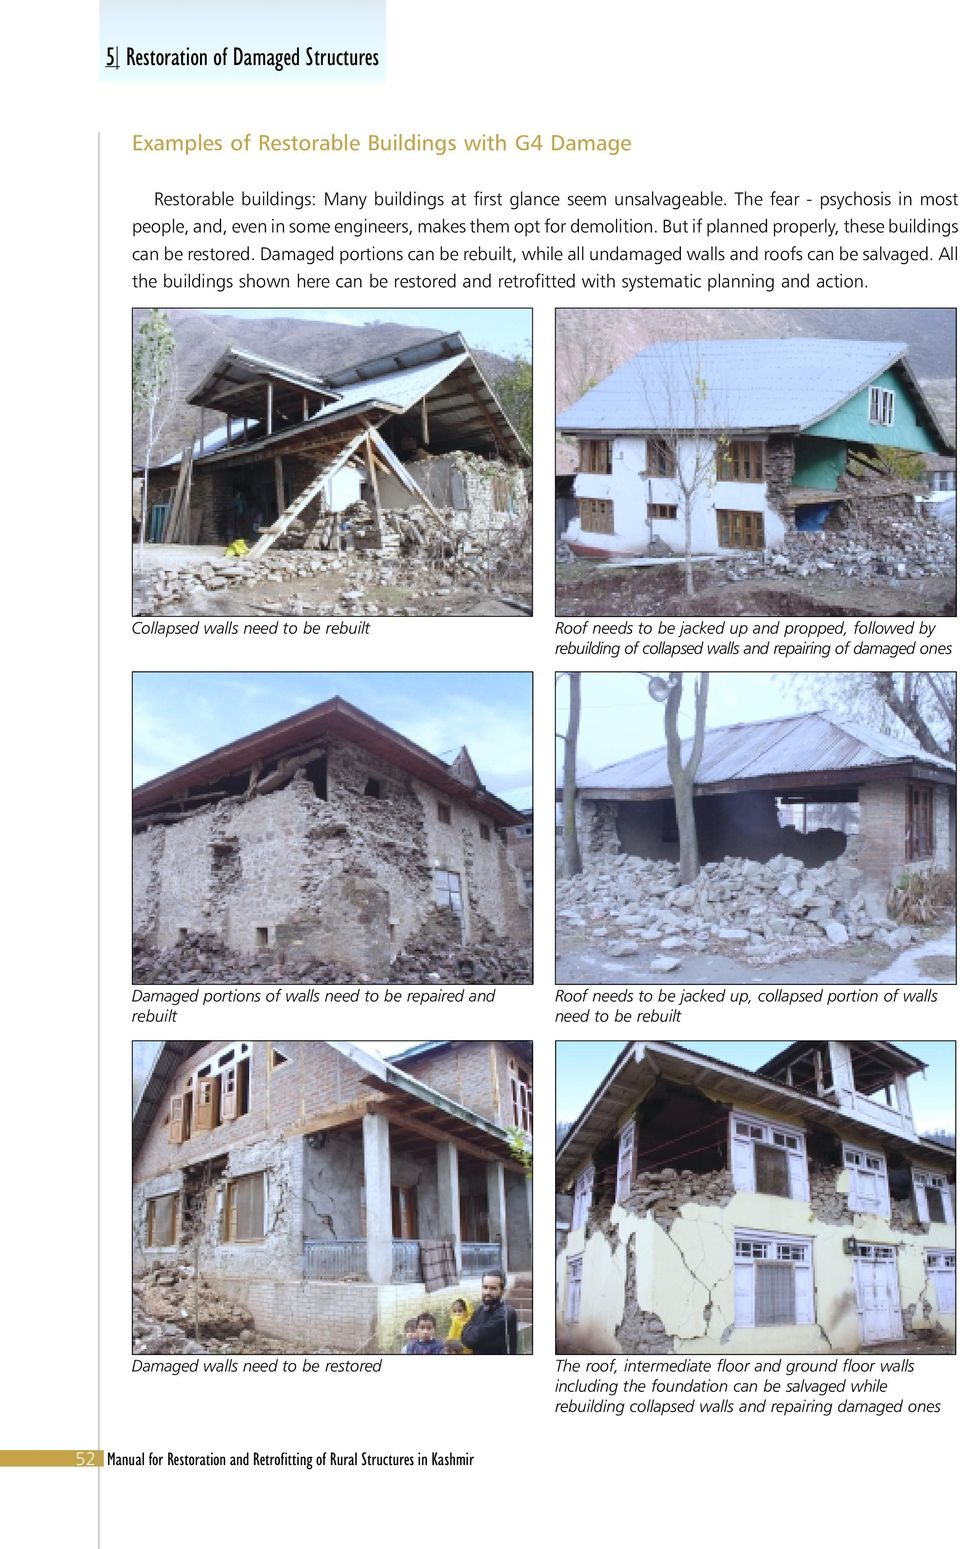 Damaged portions can be rebuilt, while all undamaged walls and roofs can be salvaged. All the buildings shown here can be restored and retrofitted with systematic planning and action.